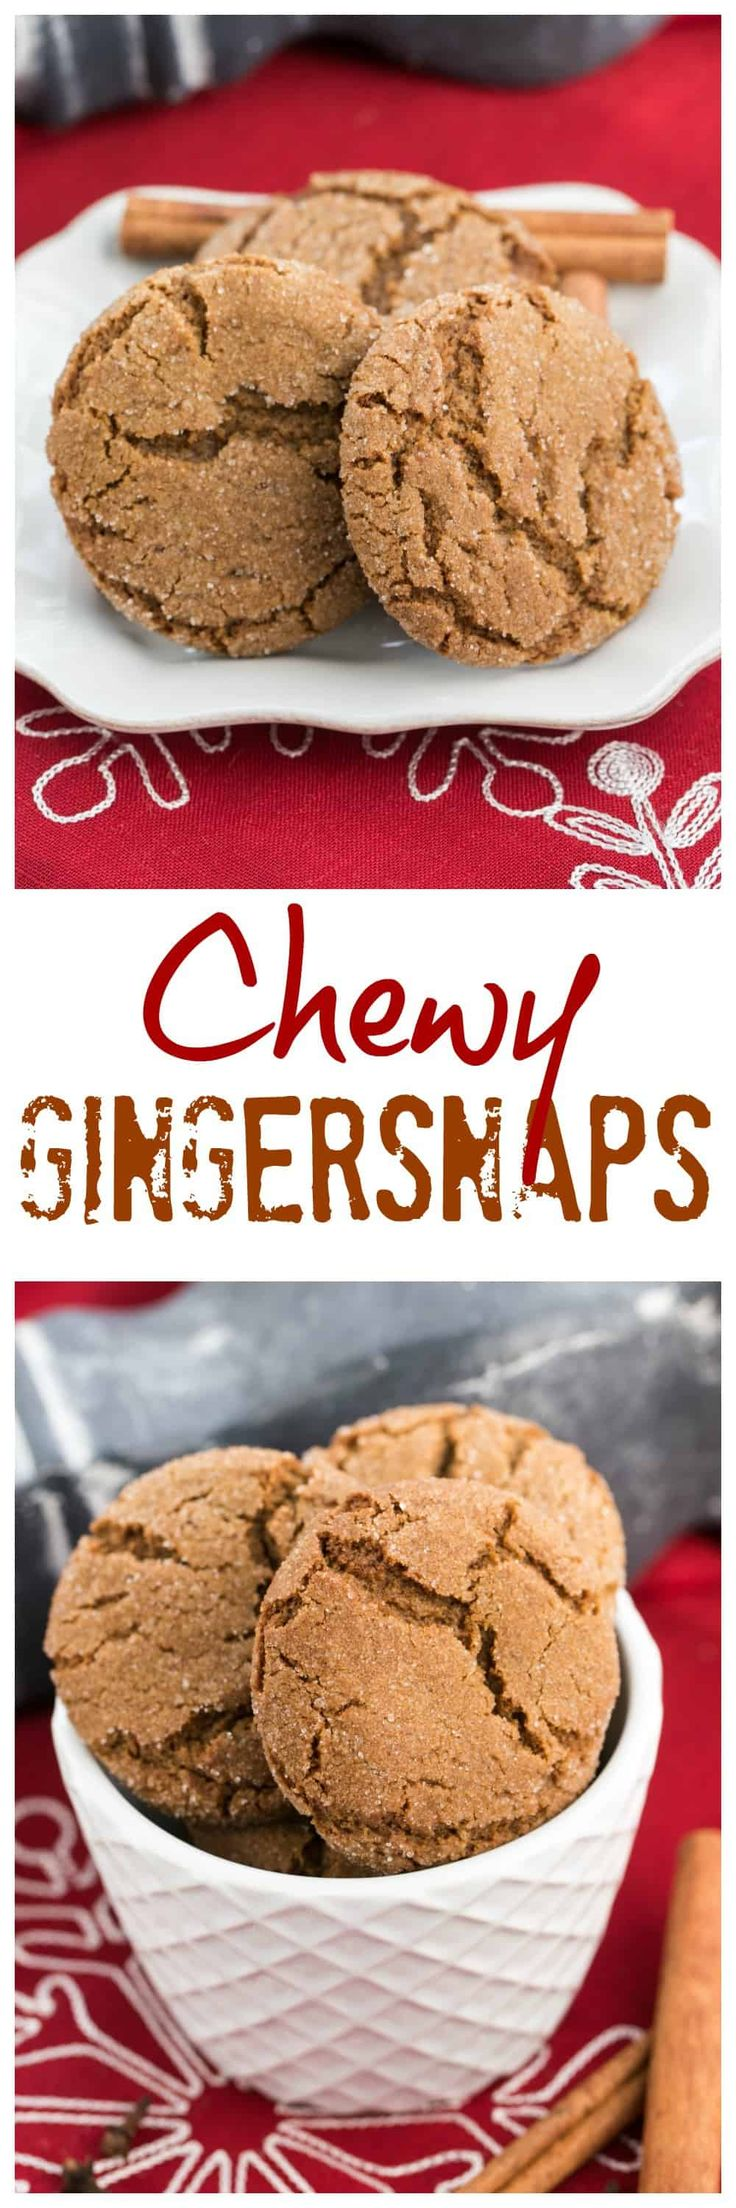 Chewy Gingersnaps | Soft, crinkled cookies spiced with ginger, cinnamon and cloves. Perfect for the holidays! #holidaybaking #gingersnaps #gingercookies